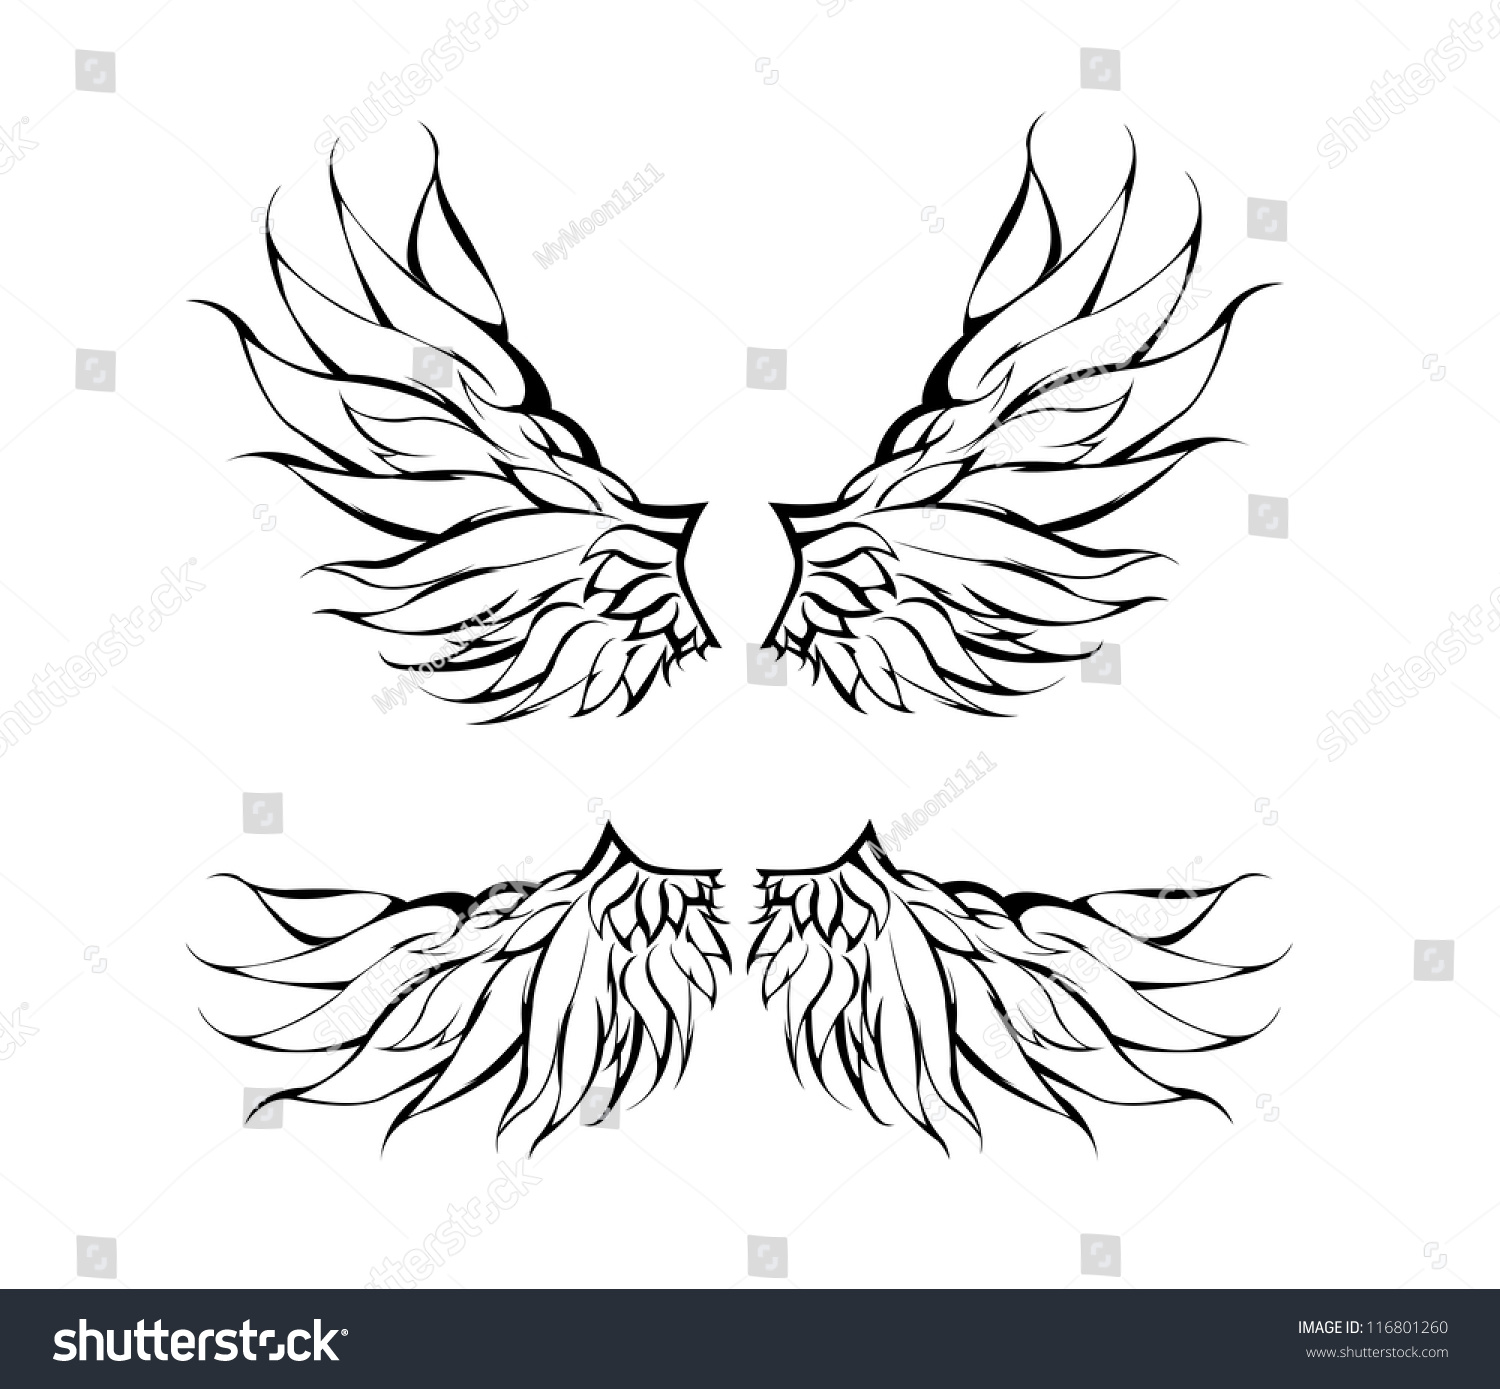 tribal wings tattoo design vector 116801260 shutterstock. Black Bedroom Furniture Sets. Home Design Ideas